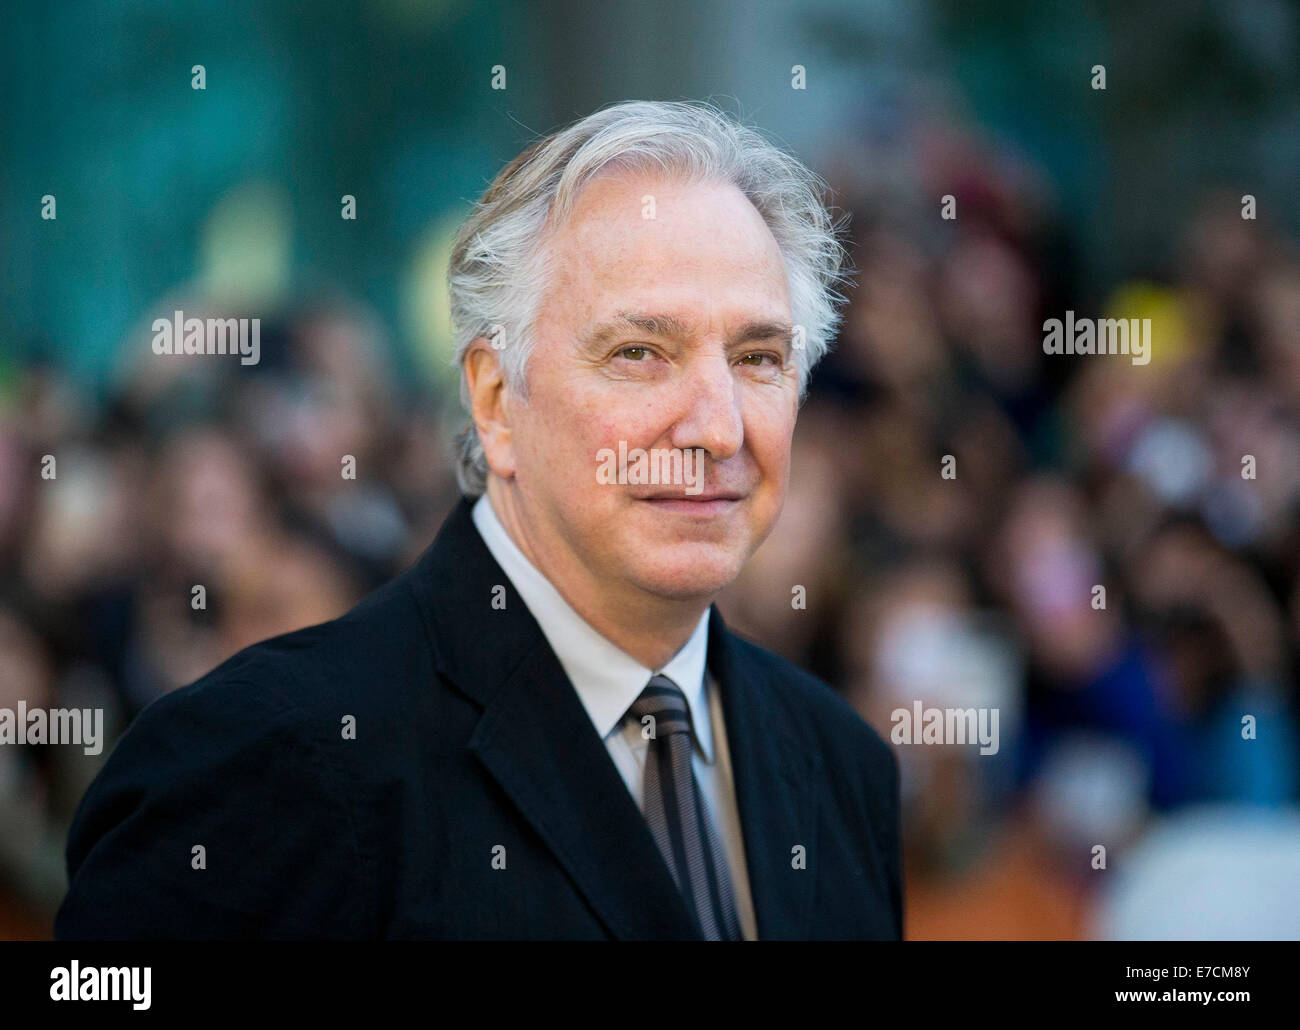 Toronto, Canada. 13th Sep, 2014. British director Alan Rickman attends the premiere of film 'A Little Chaos' - Stock Image